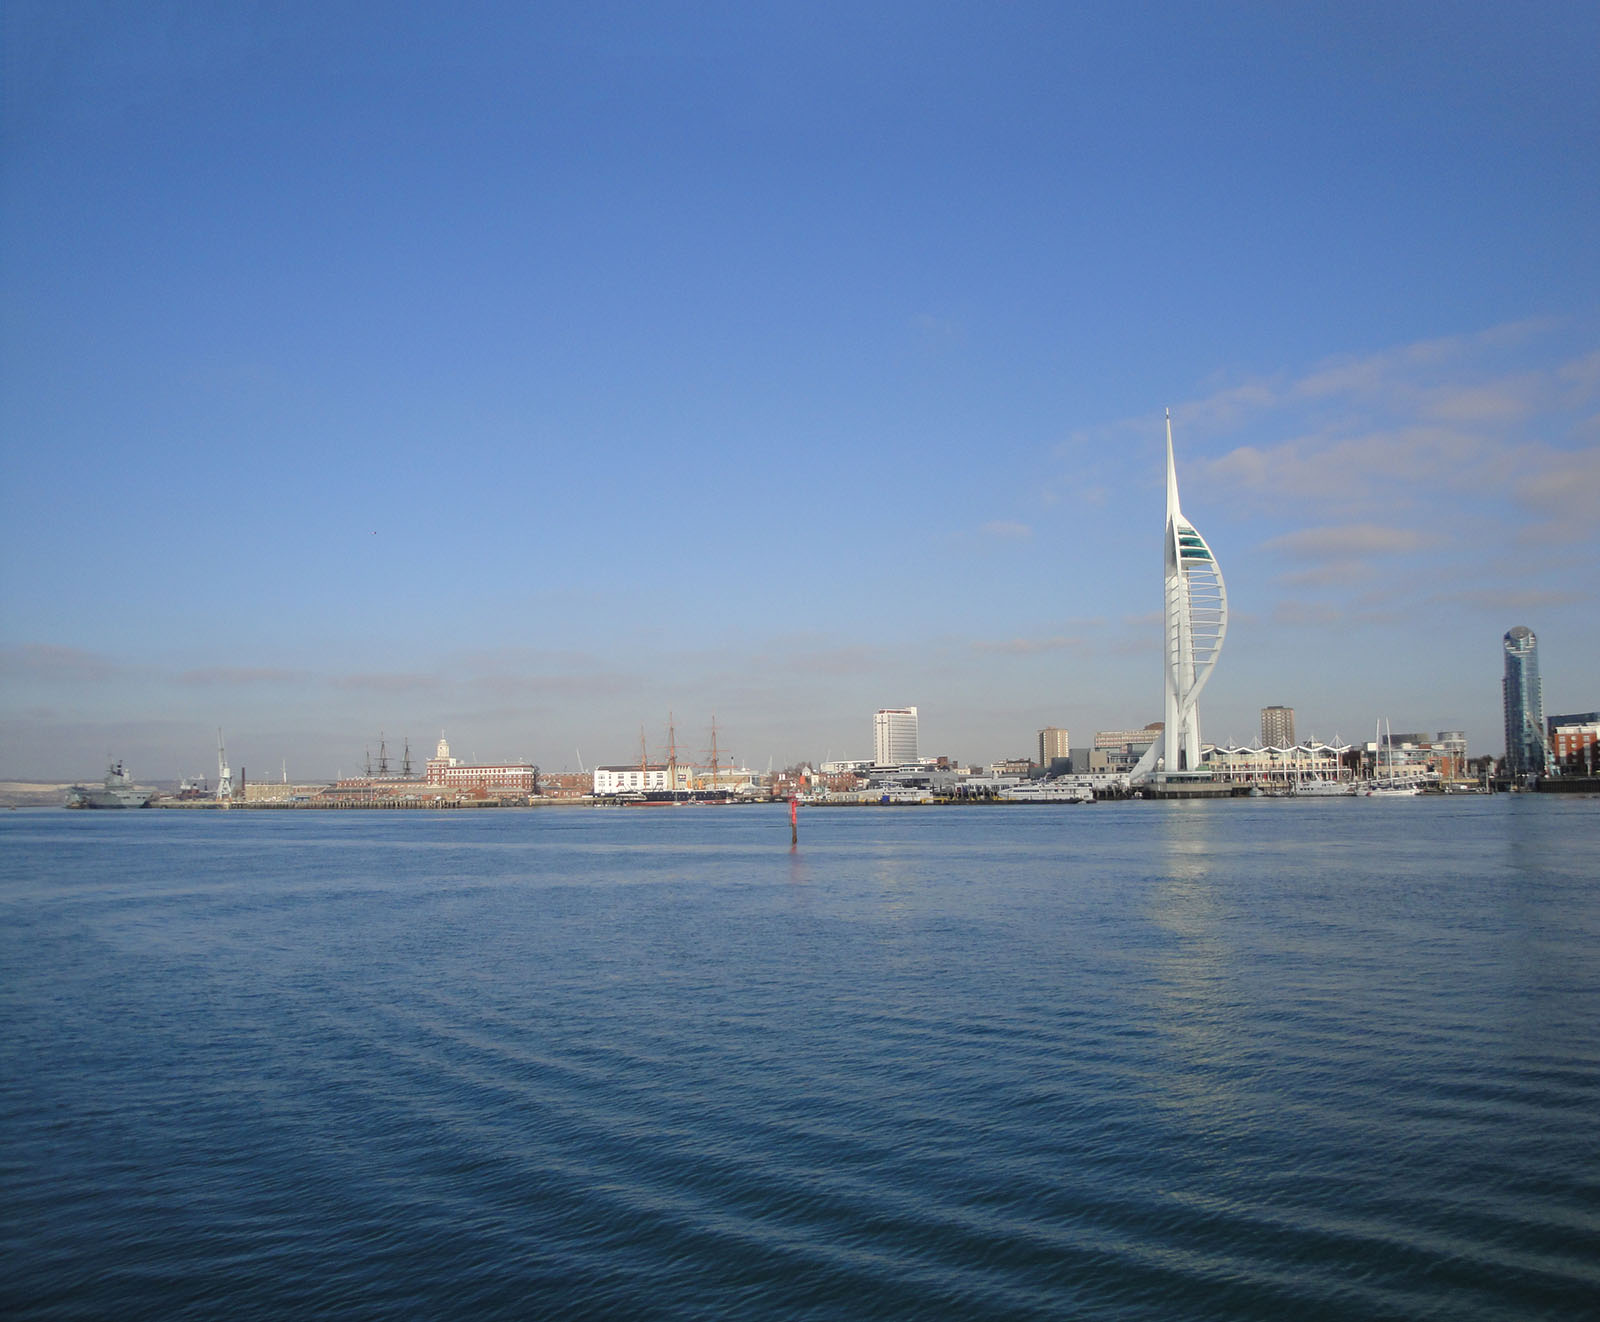 Portsmouth Harbour as seen from Gosport Haslar Marina.